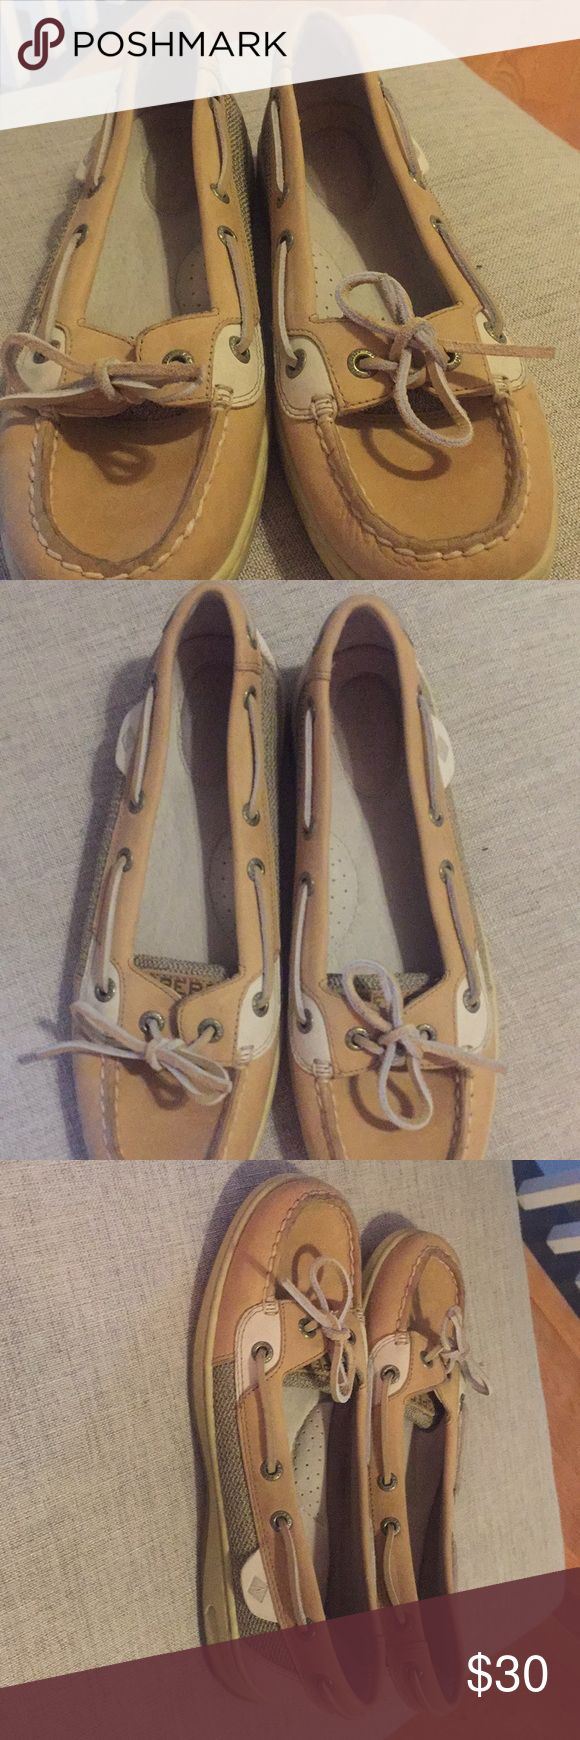 Sperry Sz 7.5 Women's Angelfish Boat Shoe Sperry Women's 7.5- Worn only ONCE on vacation when I forgot my old ones, bought these a 1/2 too small. All offers considered. Sperry Top-Sider Shoes